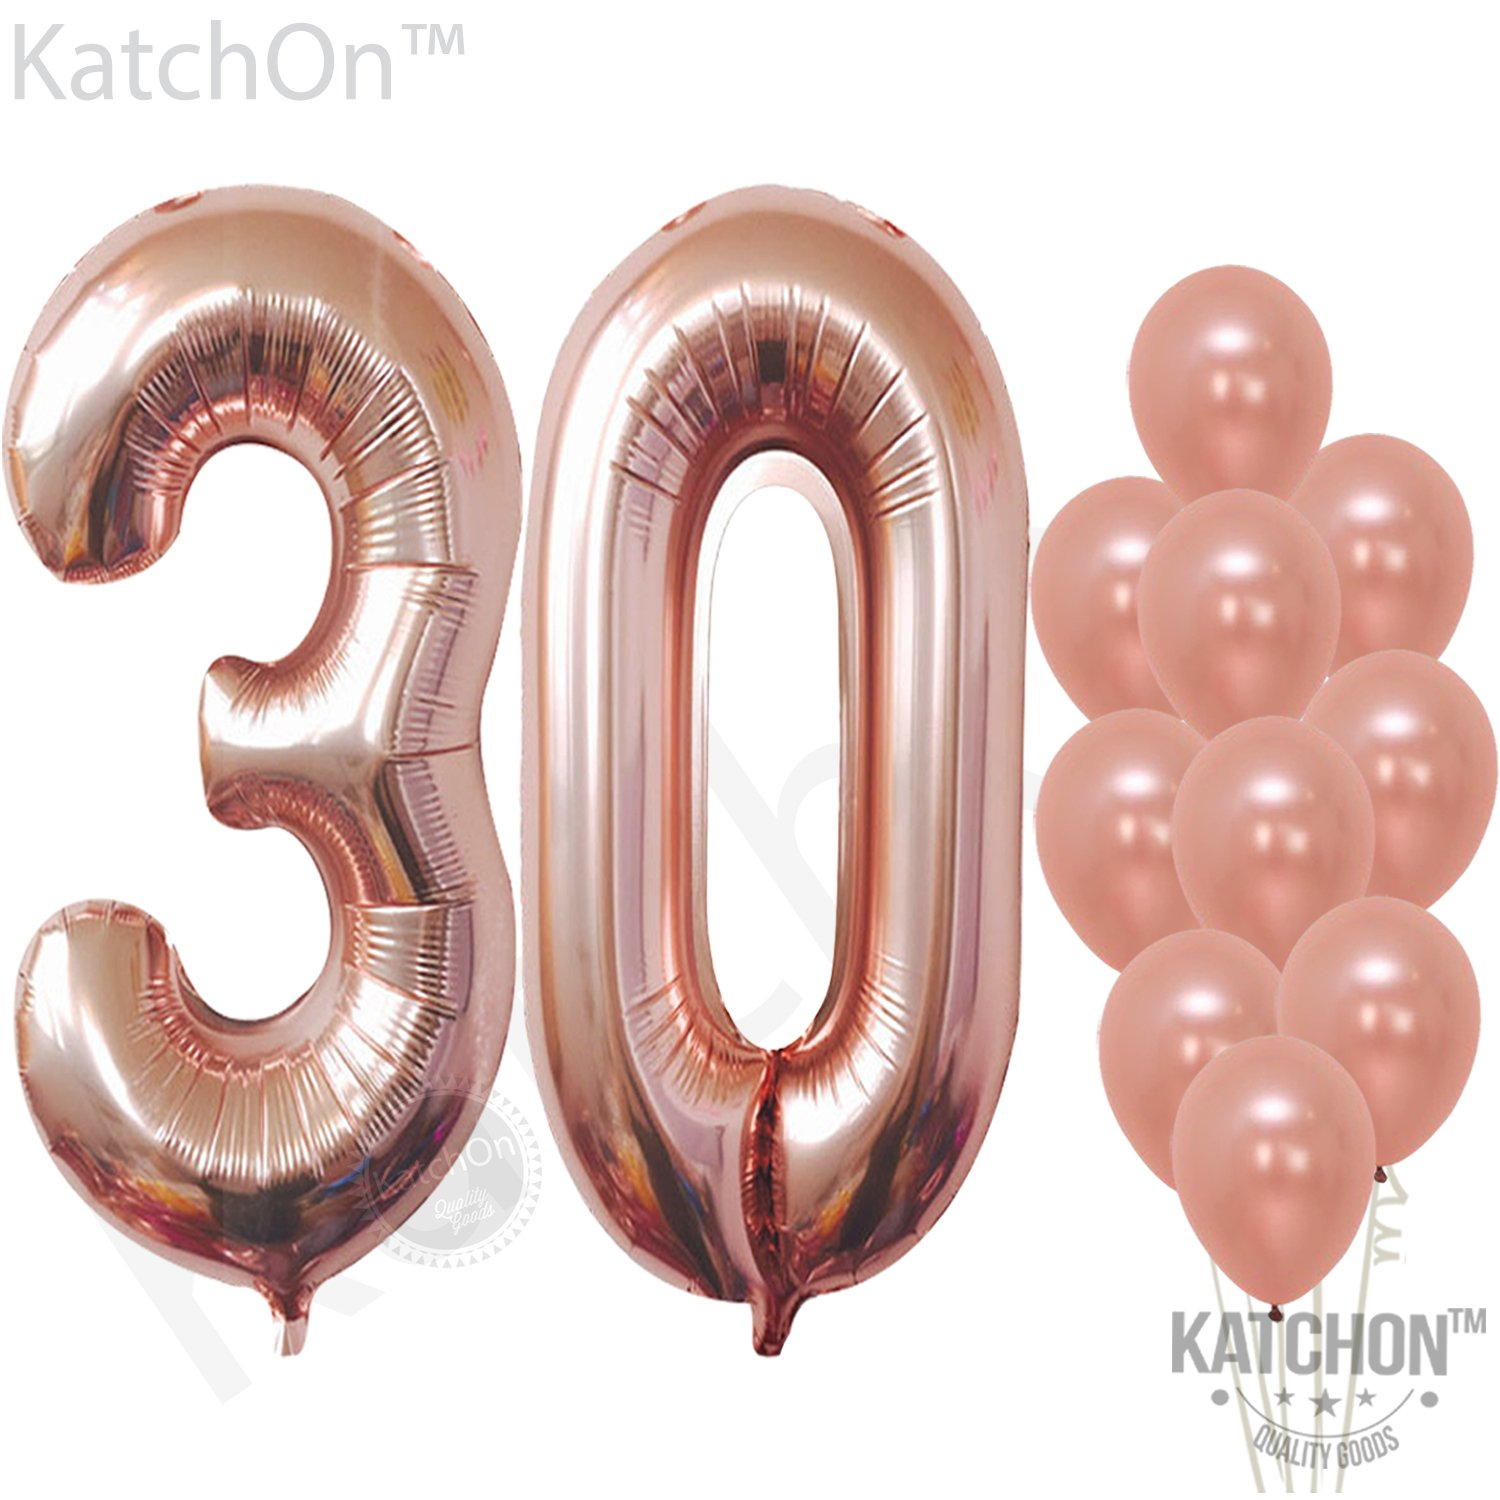 30 Rose Gold Number Balloons – Large,3 and 0 Mylar Rose Gold Balloon | Pack of 10 Latex Rose Gold Balloons,12 Inch | Great for 30th Birthday Decorations Party Supplies, 30 Year Anniversary Celebration